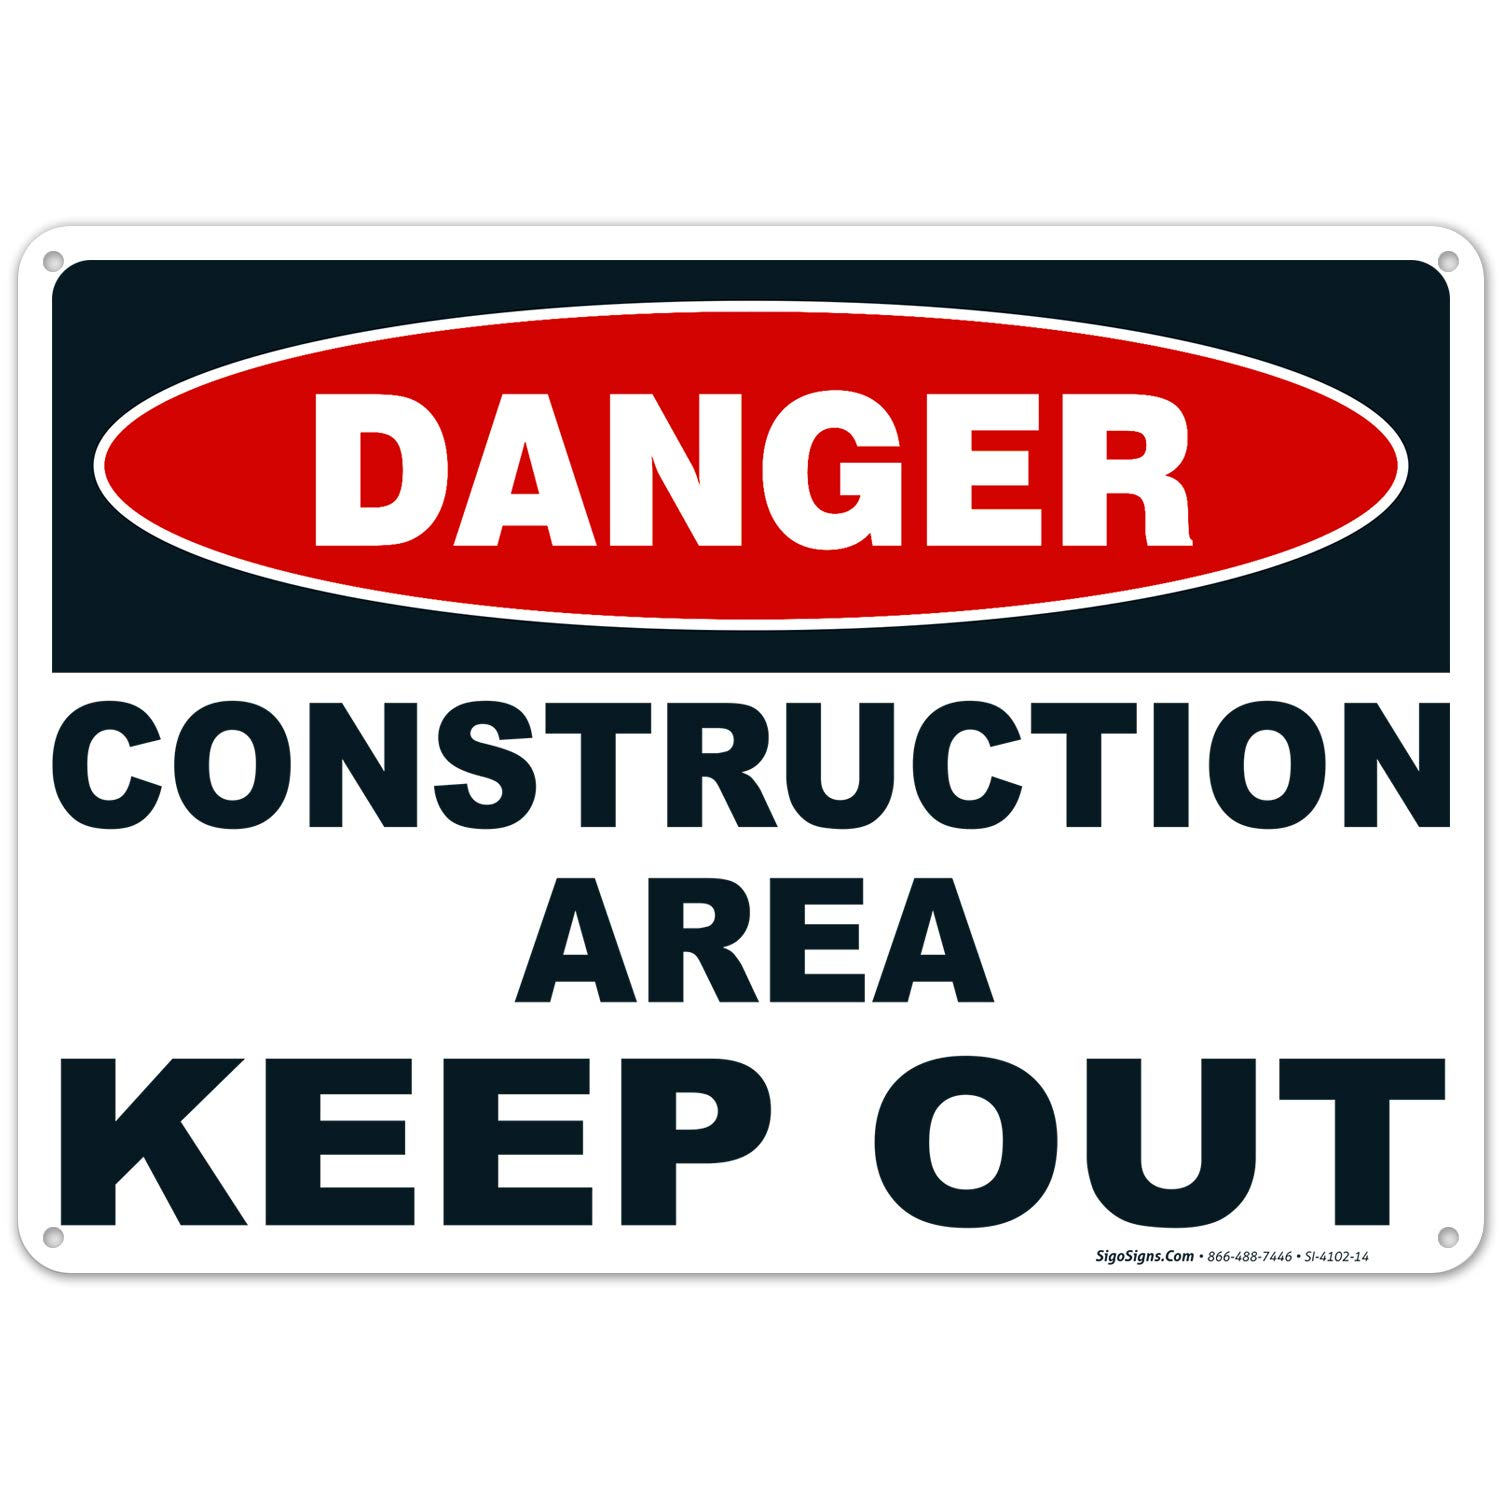 Danger Construction Area Keep Out Black Sign Large 10 X 14 Rust Free 0.40 Aluminum Sign UV Printed with Professional Graphics-Easy to Mount Indoors & Outdoors